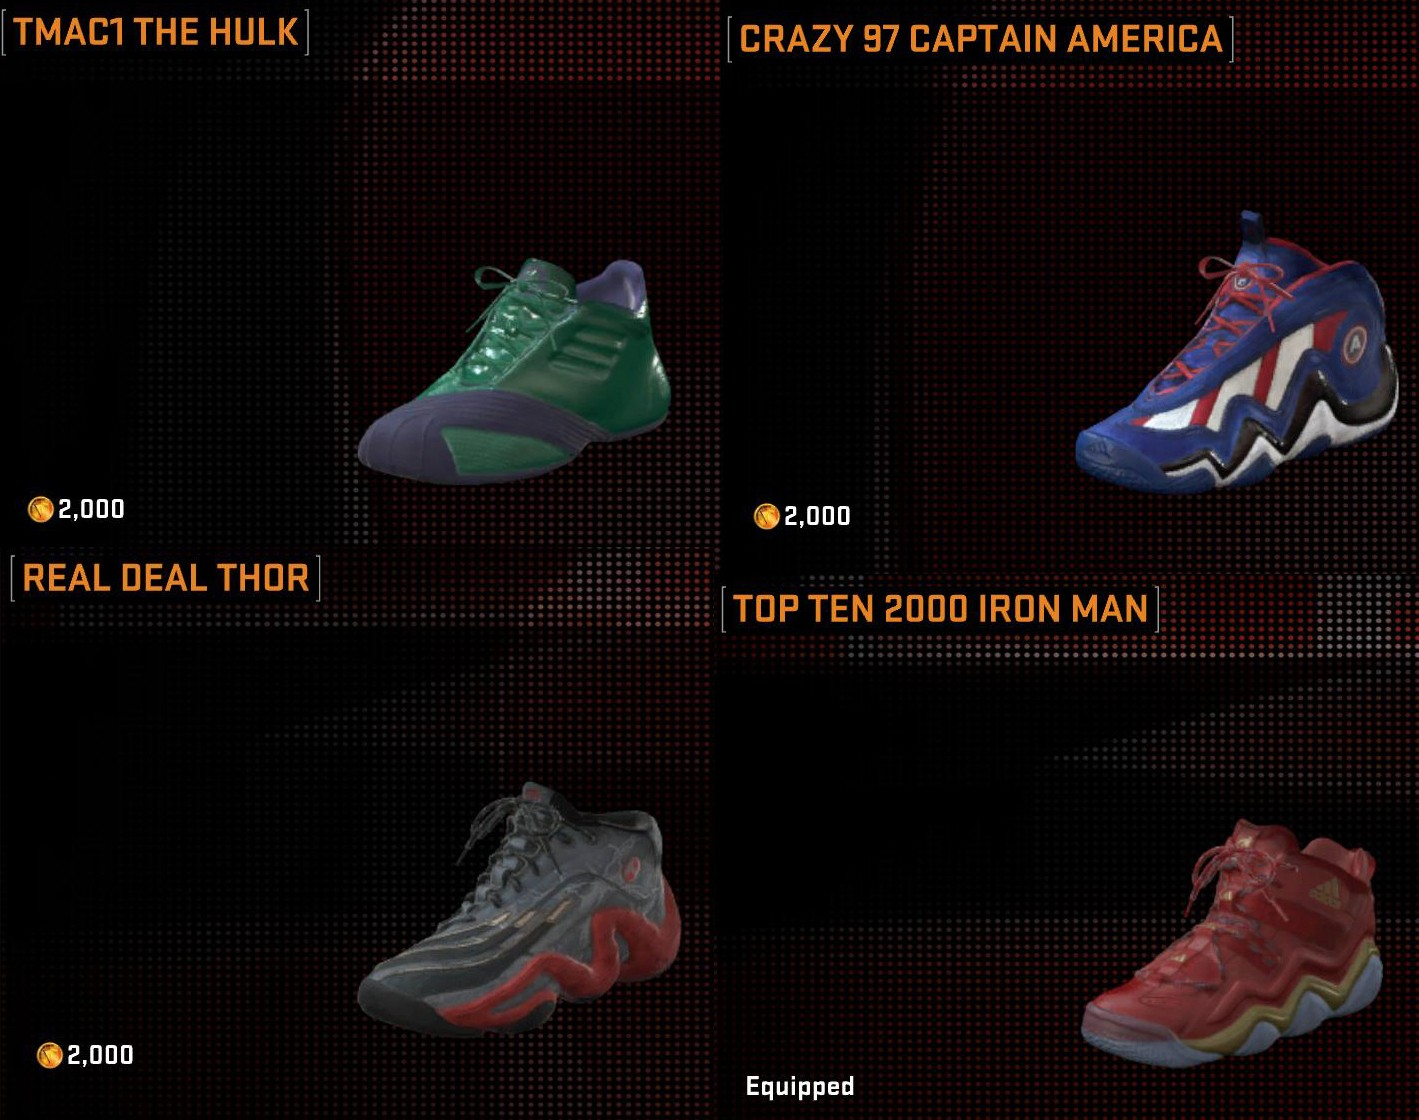 As Mentioned Last Night Marvel Apparel Has Made Its Way Into Nba 2k16 Seen In The Images There Are Quite A Few Hoos Jerseys And Shoes Available